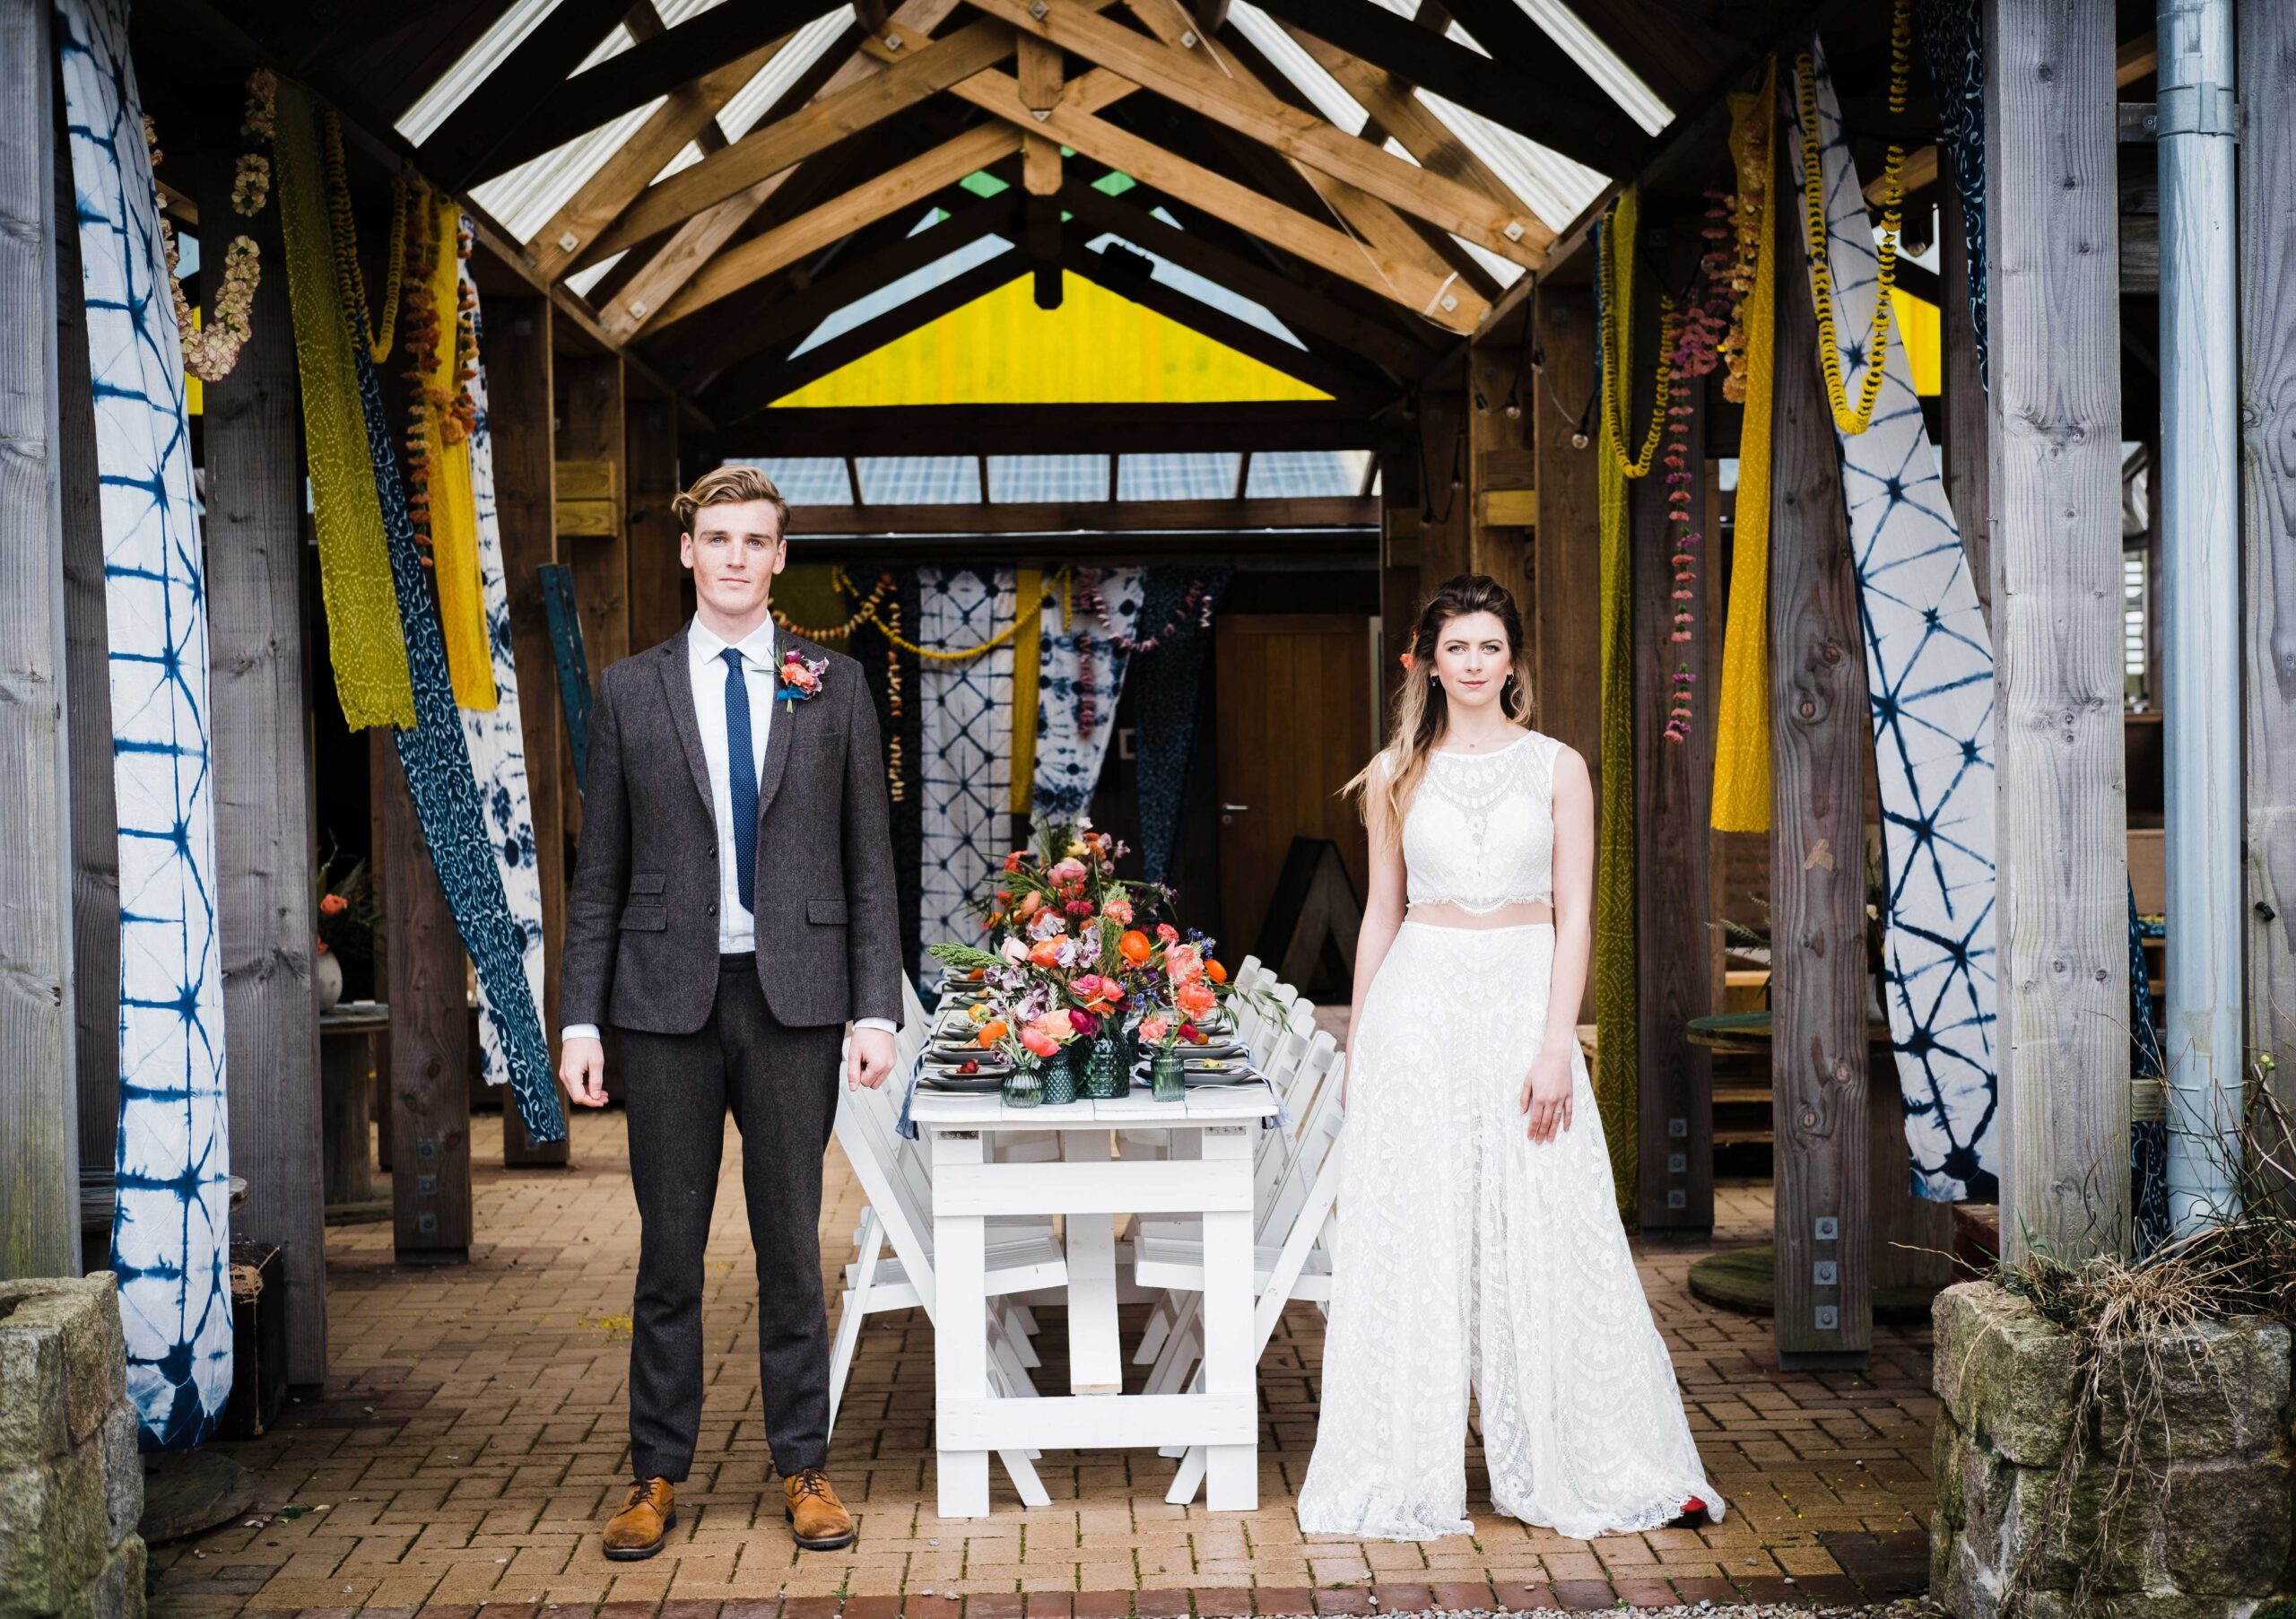 Bride and Groom at rustic wedding venue in Cornwall